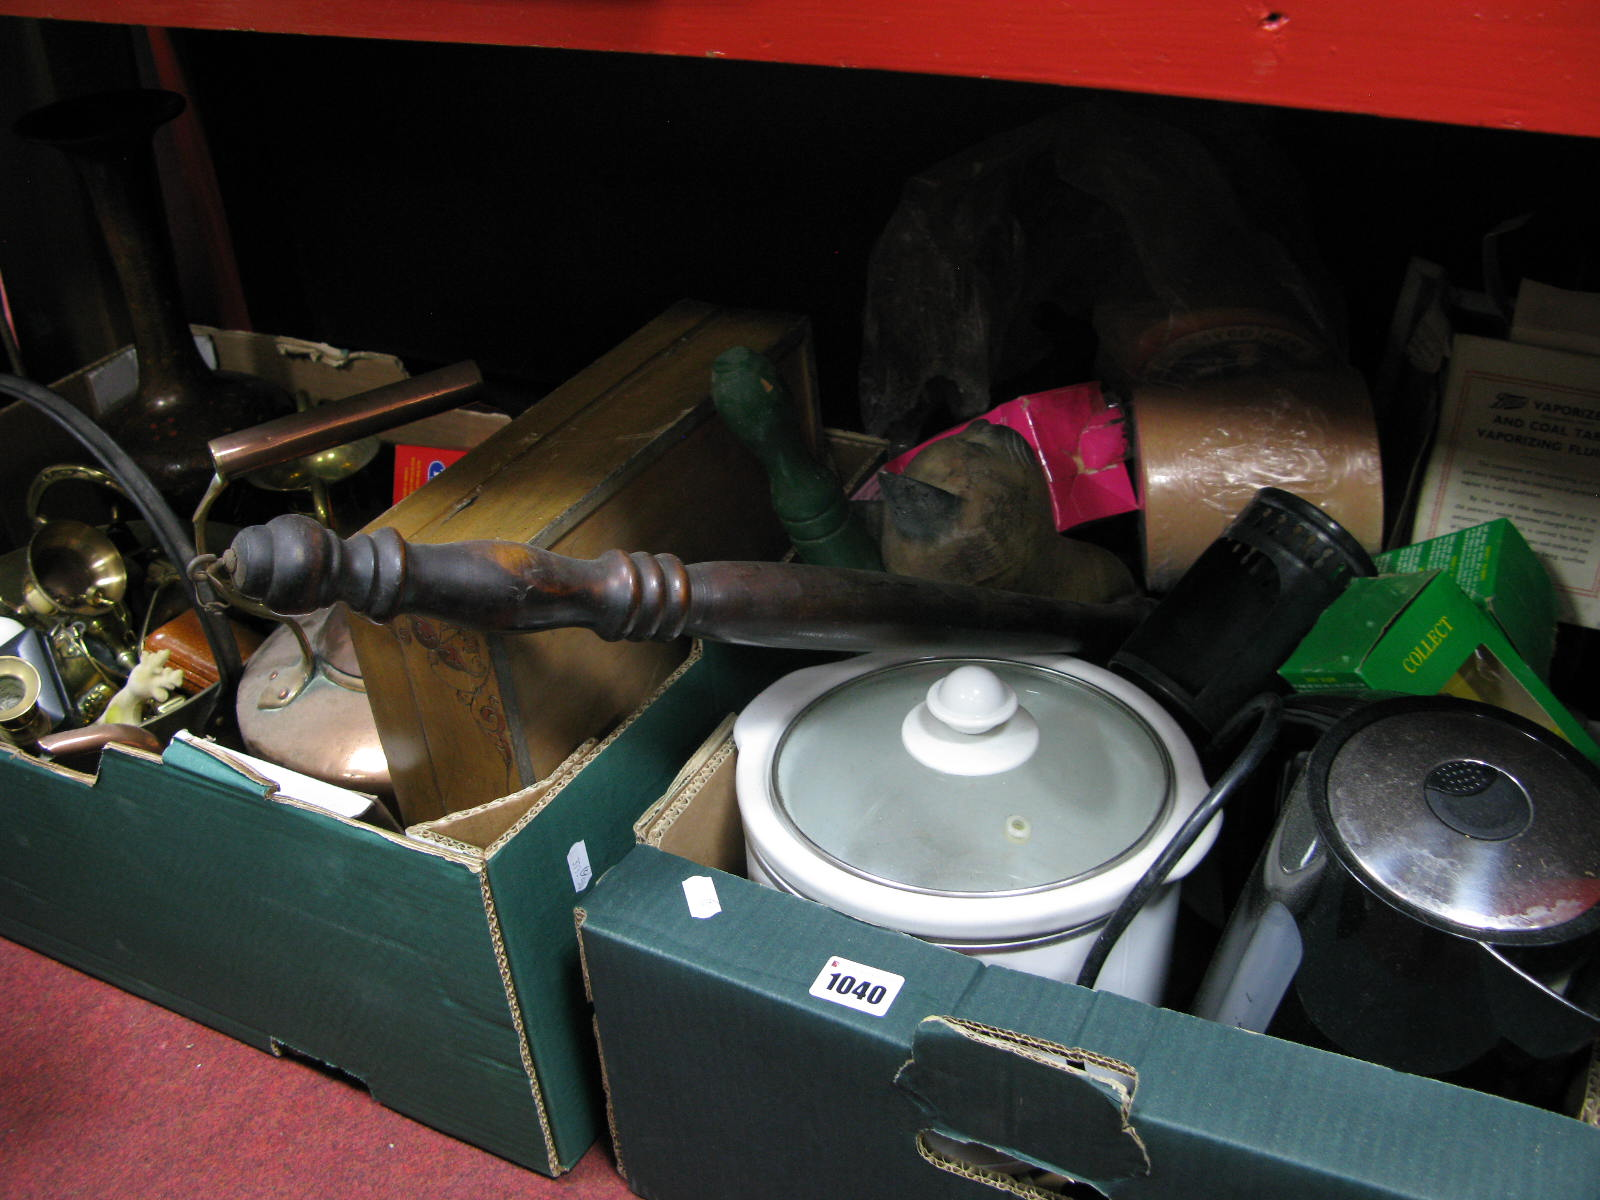 Lot 1040 - A XIX Century Copper Kettle, brassware, beer mats, kettle, etc:- Two Boxes (Untested Sold For